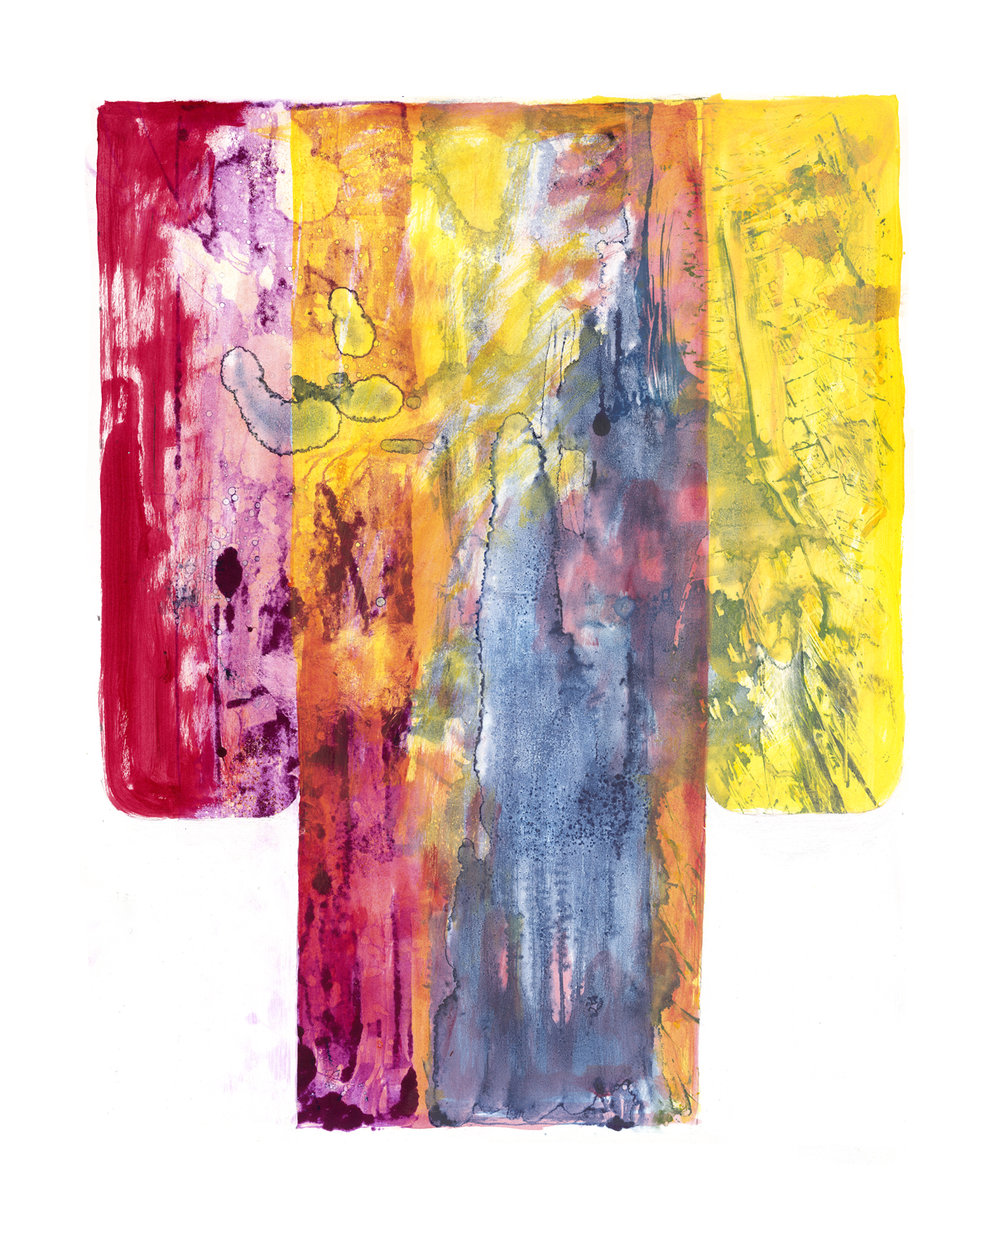 Formal Kimono , 2000-2002, Monotype with hand painted modifications by the artist, 32.5 x 25.5 in. (82 x 64 cm.)